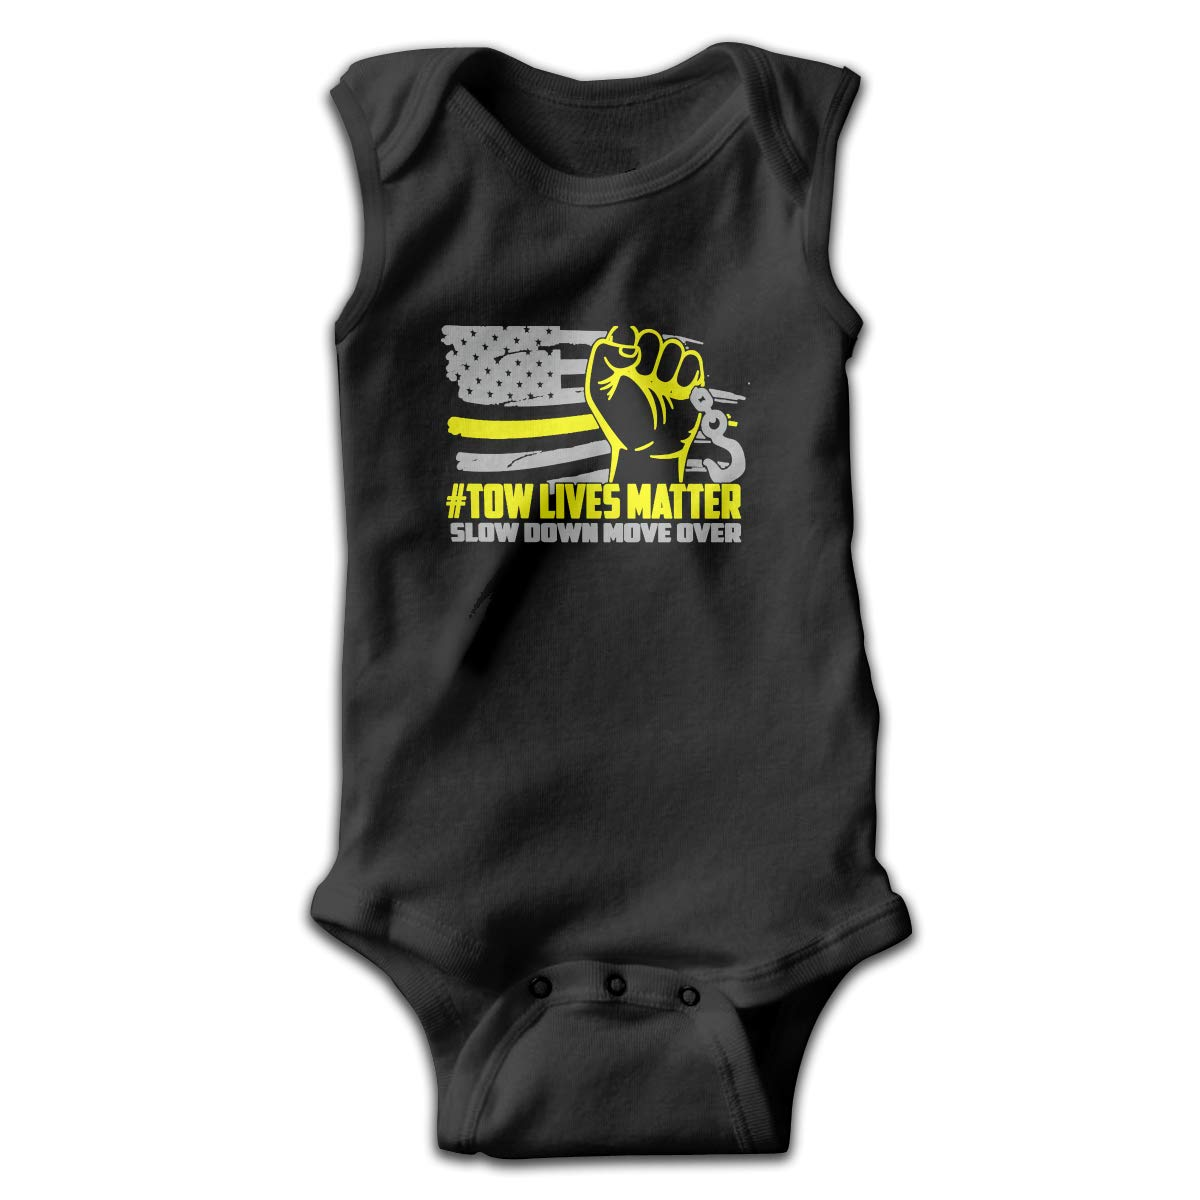 Tow Lives Matter Move Over Slow Down Sleeveless Trottie Jumpsuit Cute Onesie Summer Bodysuits